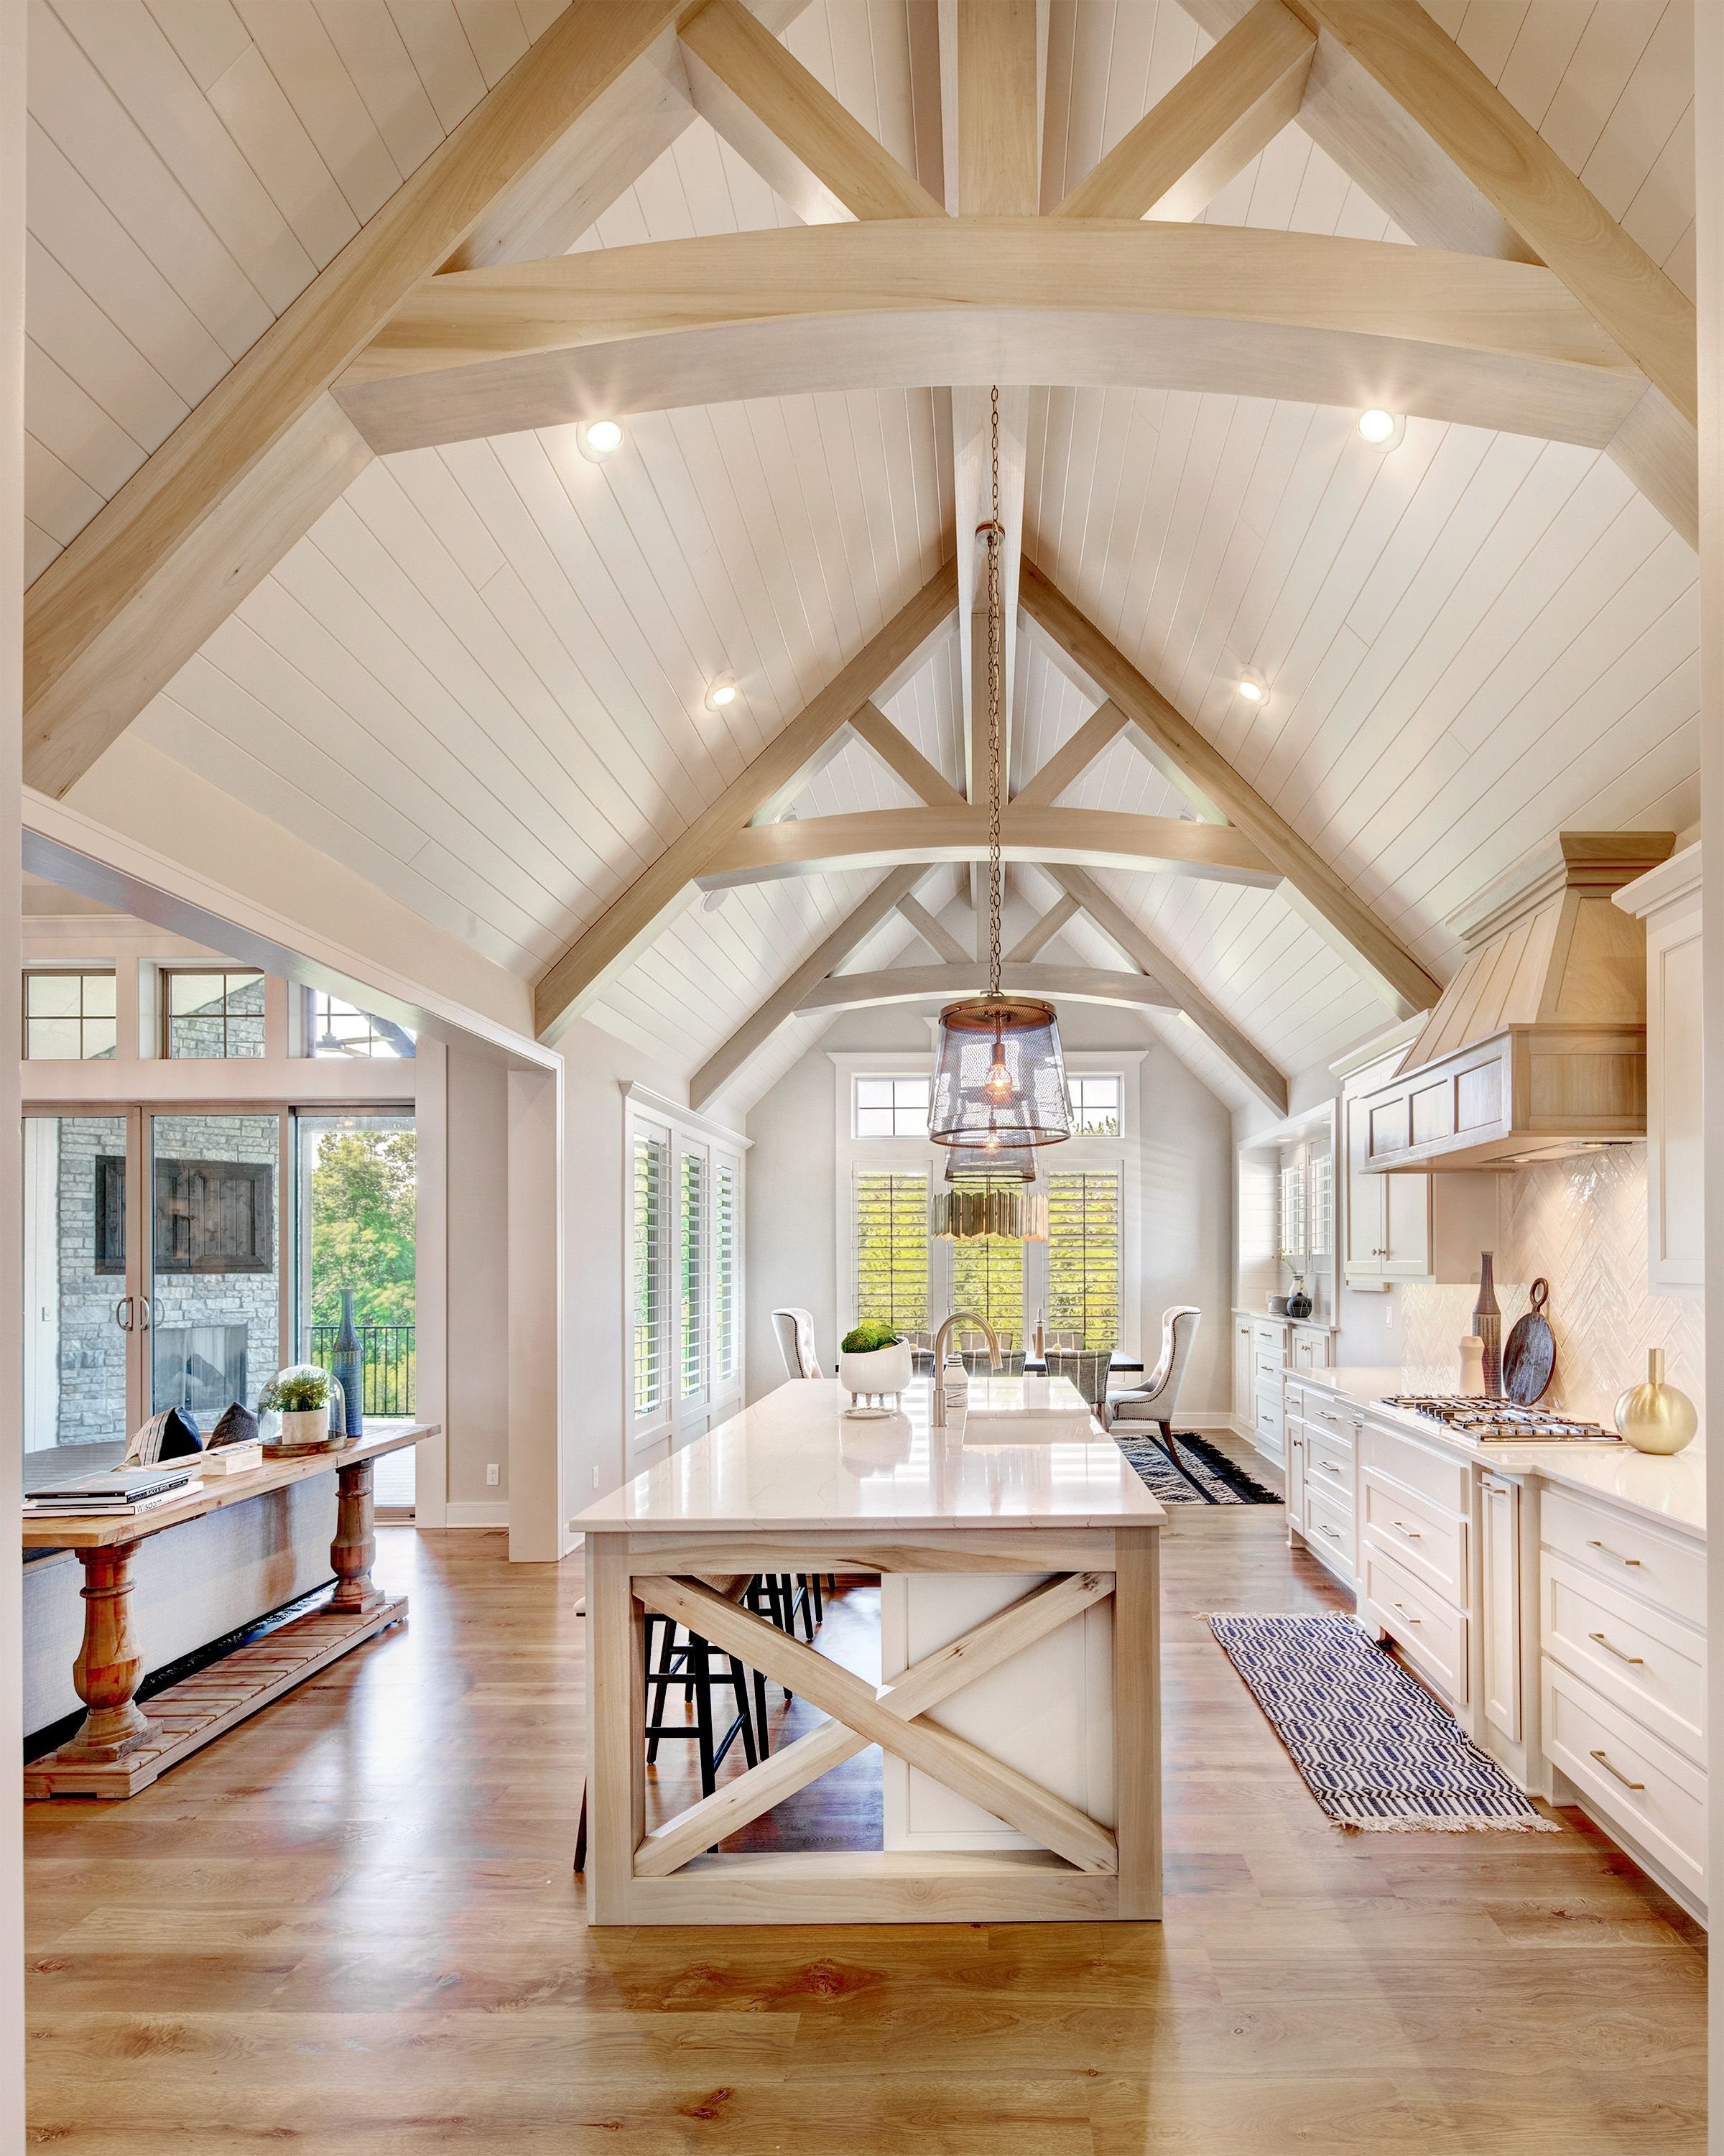 Kitchen Design Vaulted Ceiling Kitchen Vaulted Ceiling Beams Vaulted Ceiling Living Room